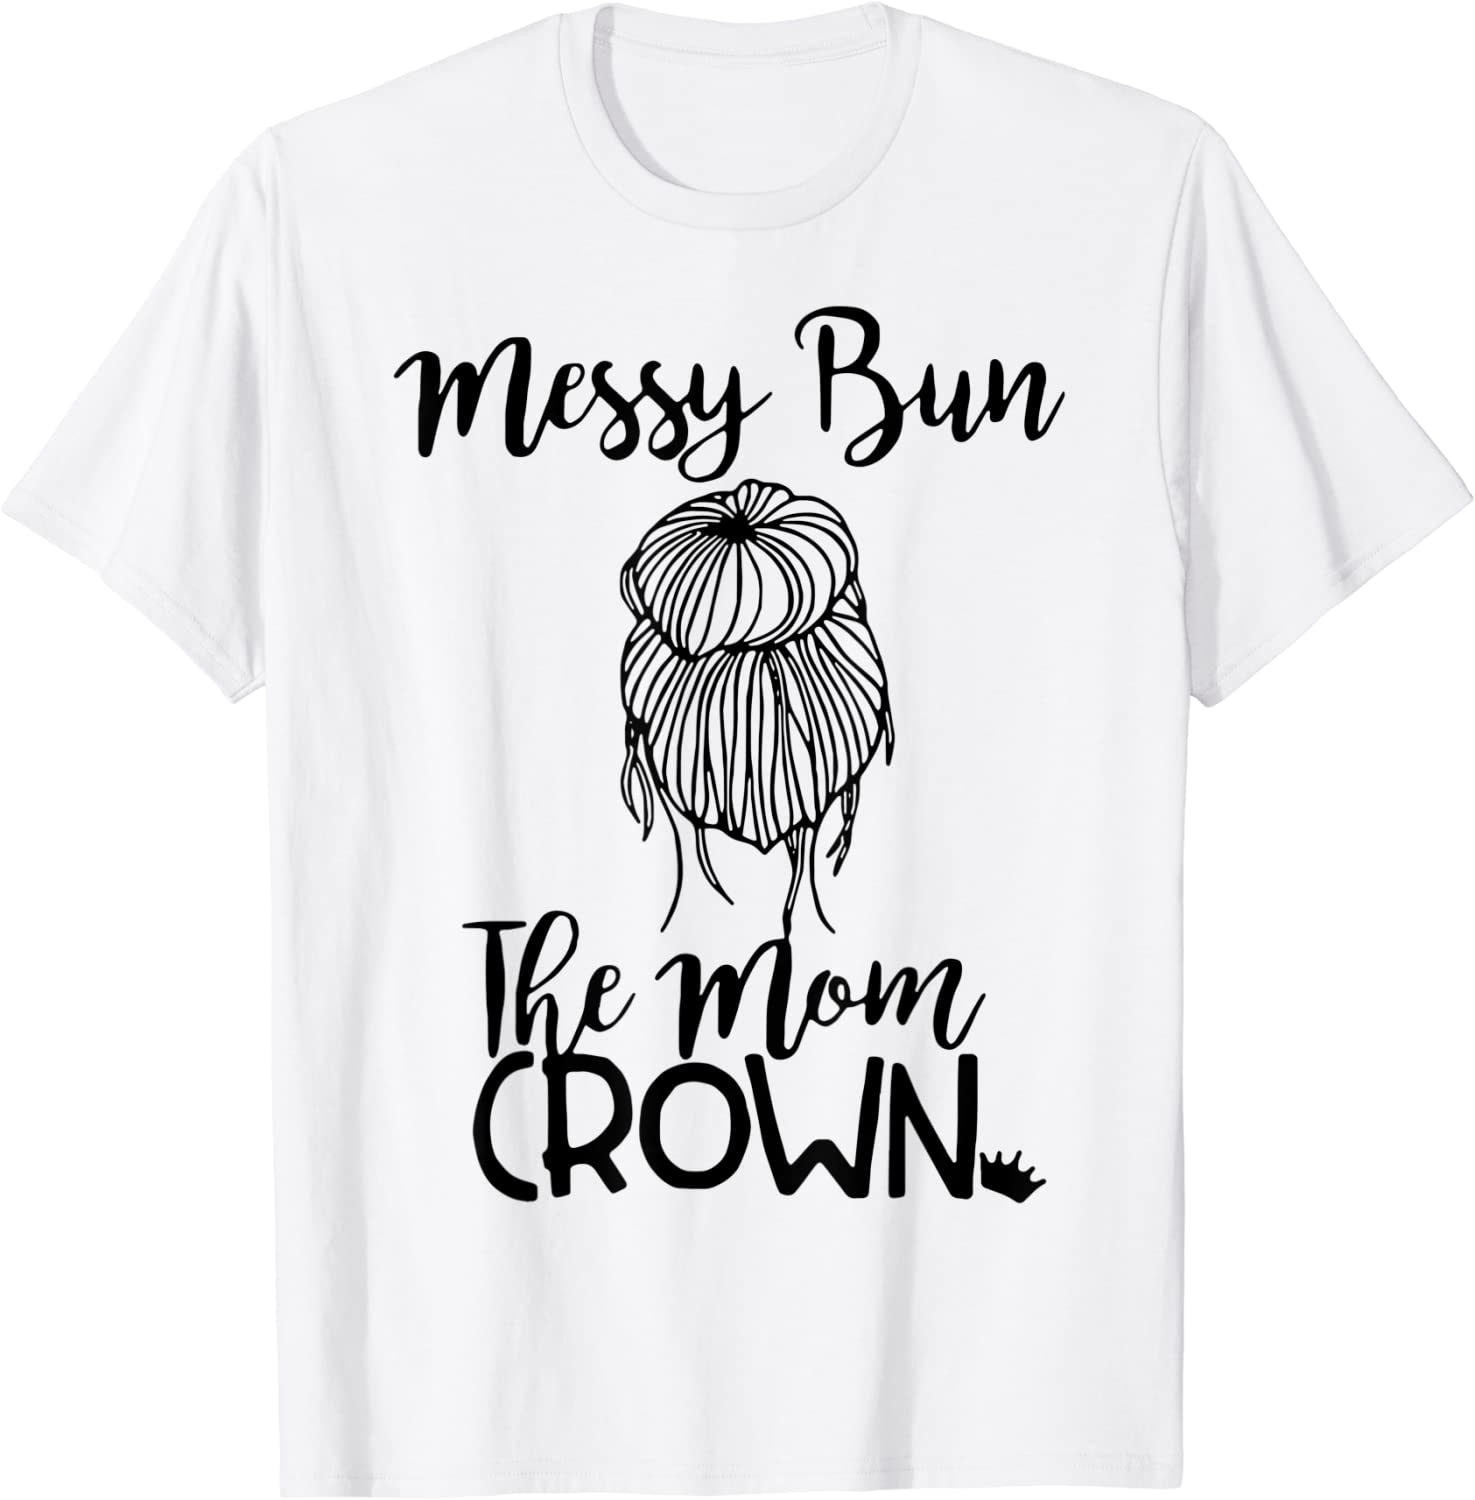 Mom life T-Shirt for women mom-life collection proud mama short for her Momma Strong top for new mommy best mother/'s day gift for wife